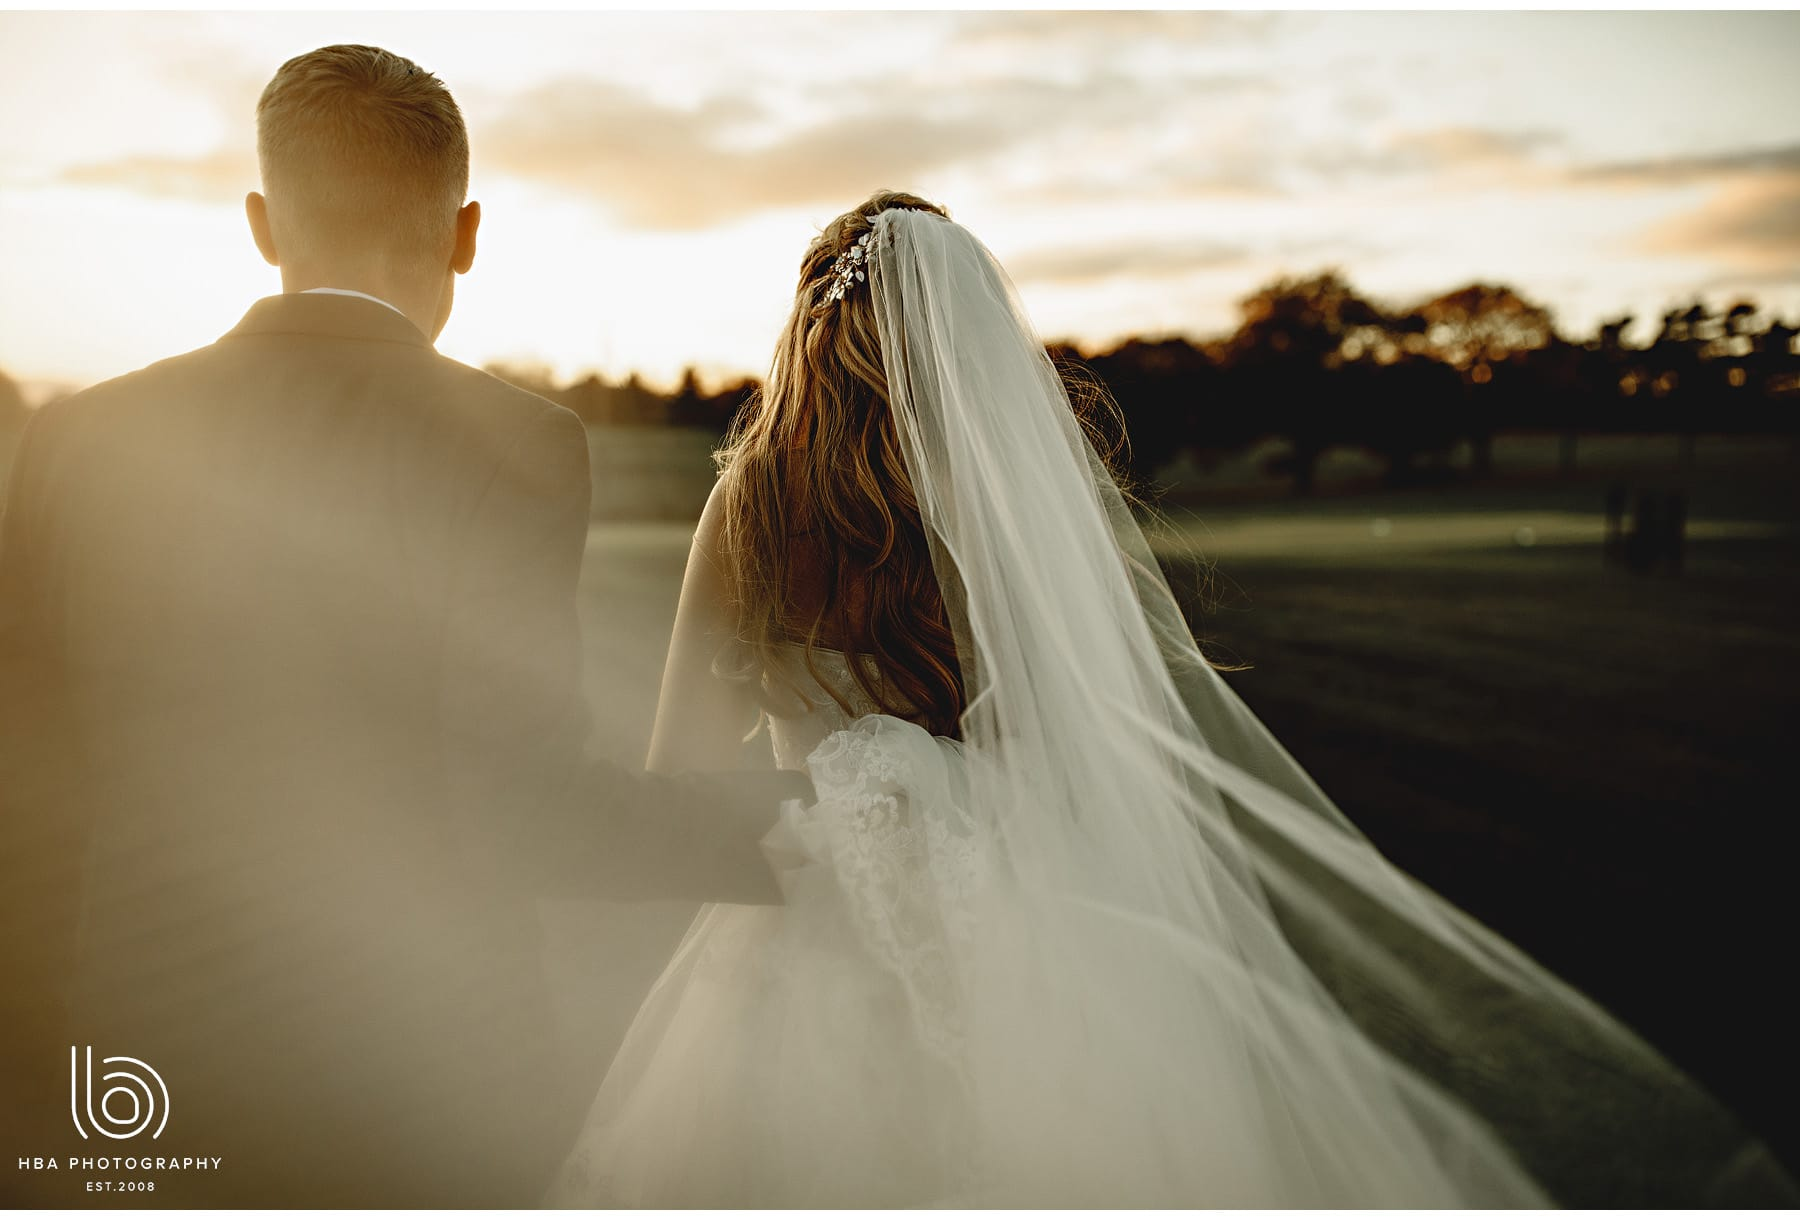 the bride and her veil blowing in the wind